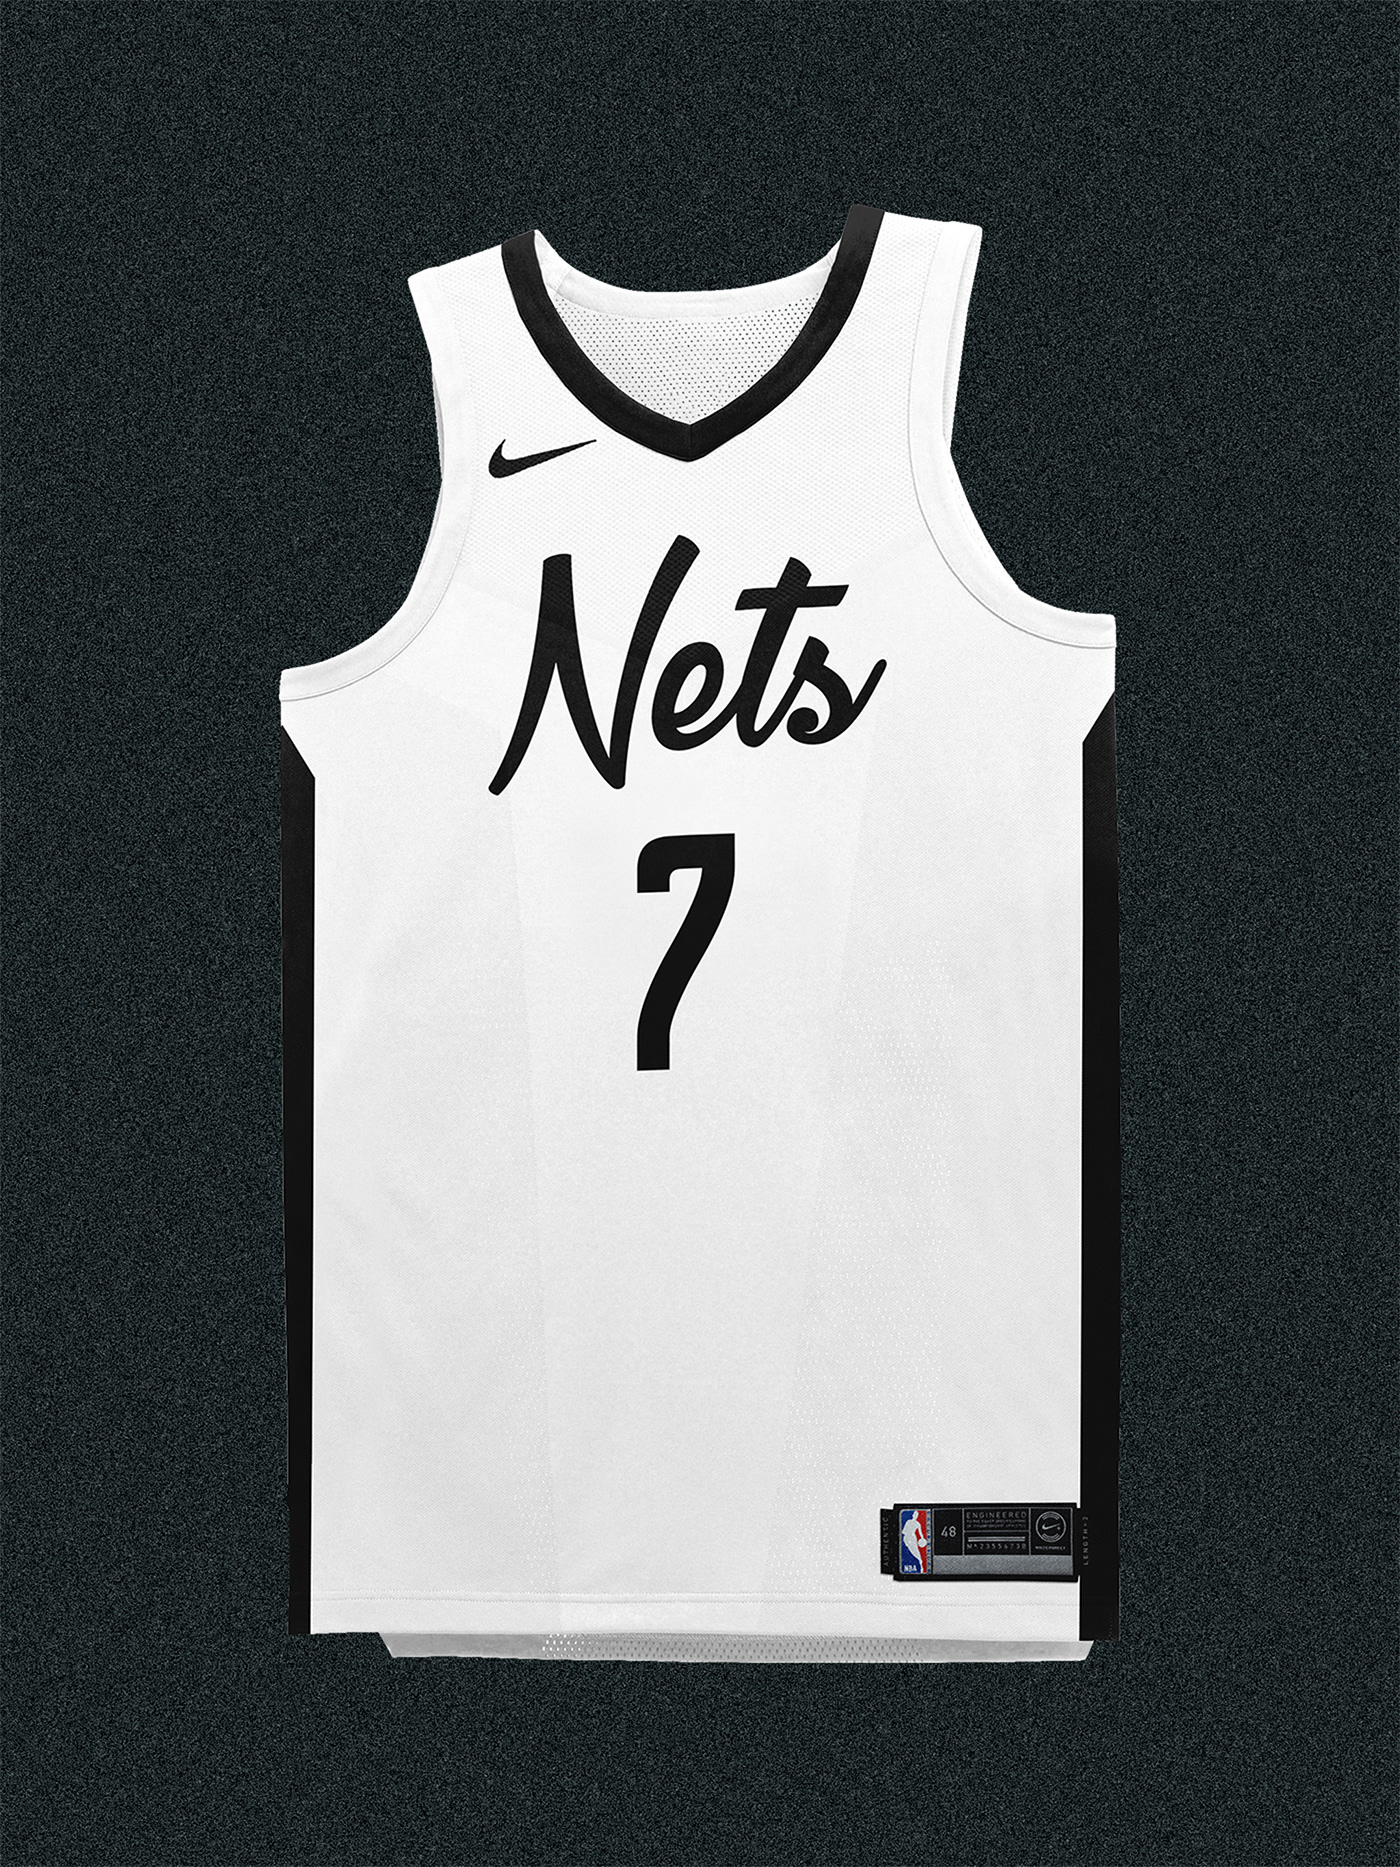 promo code 3215e 53d3d NBA Uniform Refresh on Behance